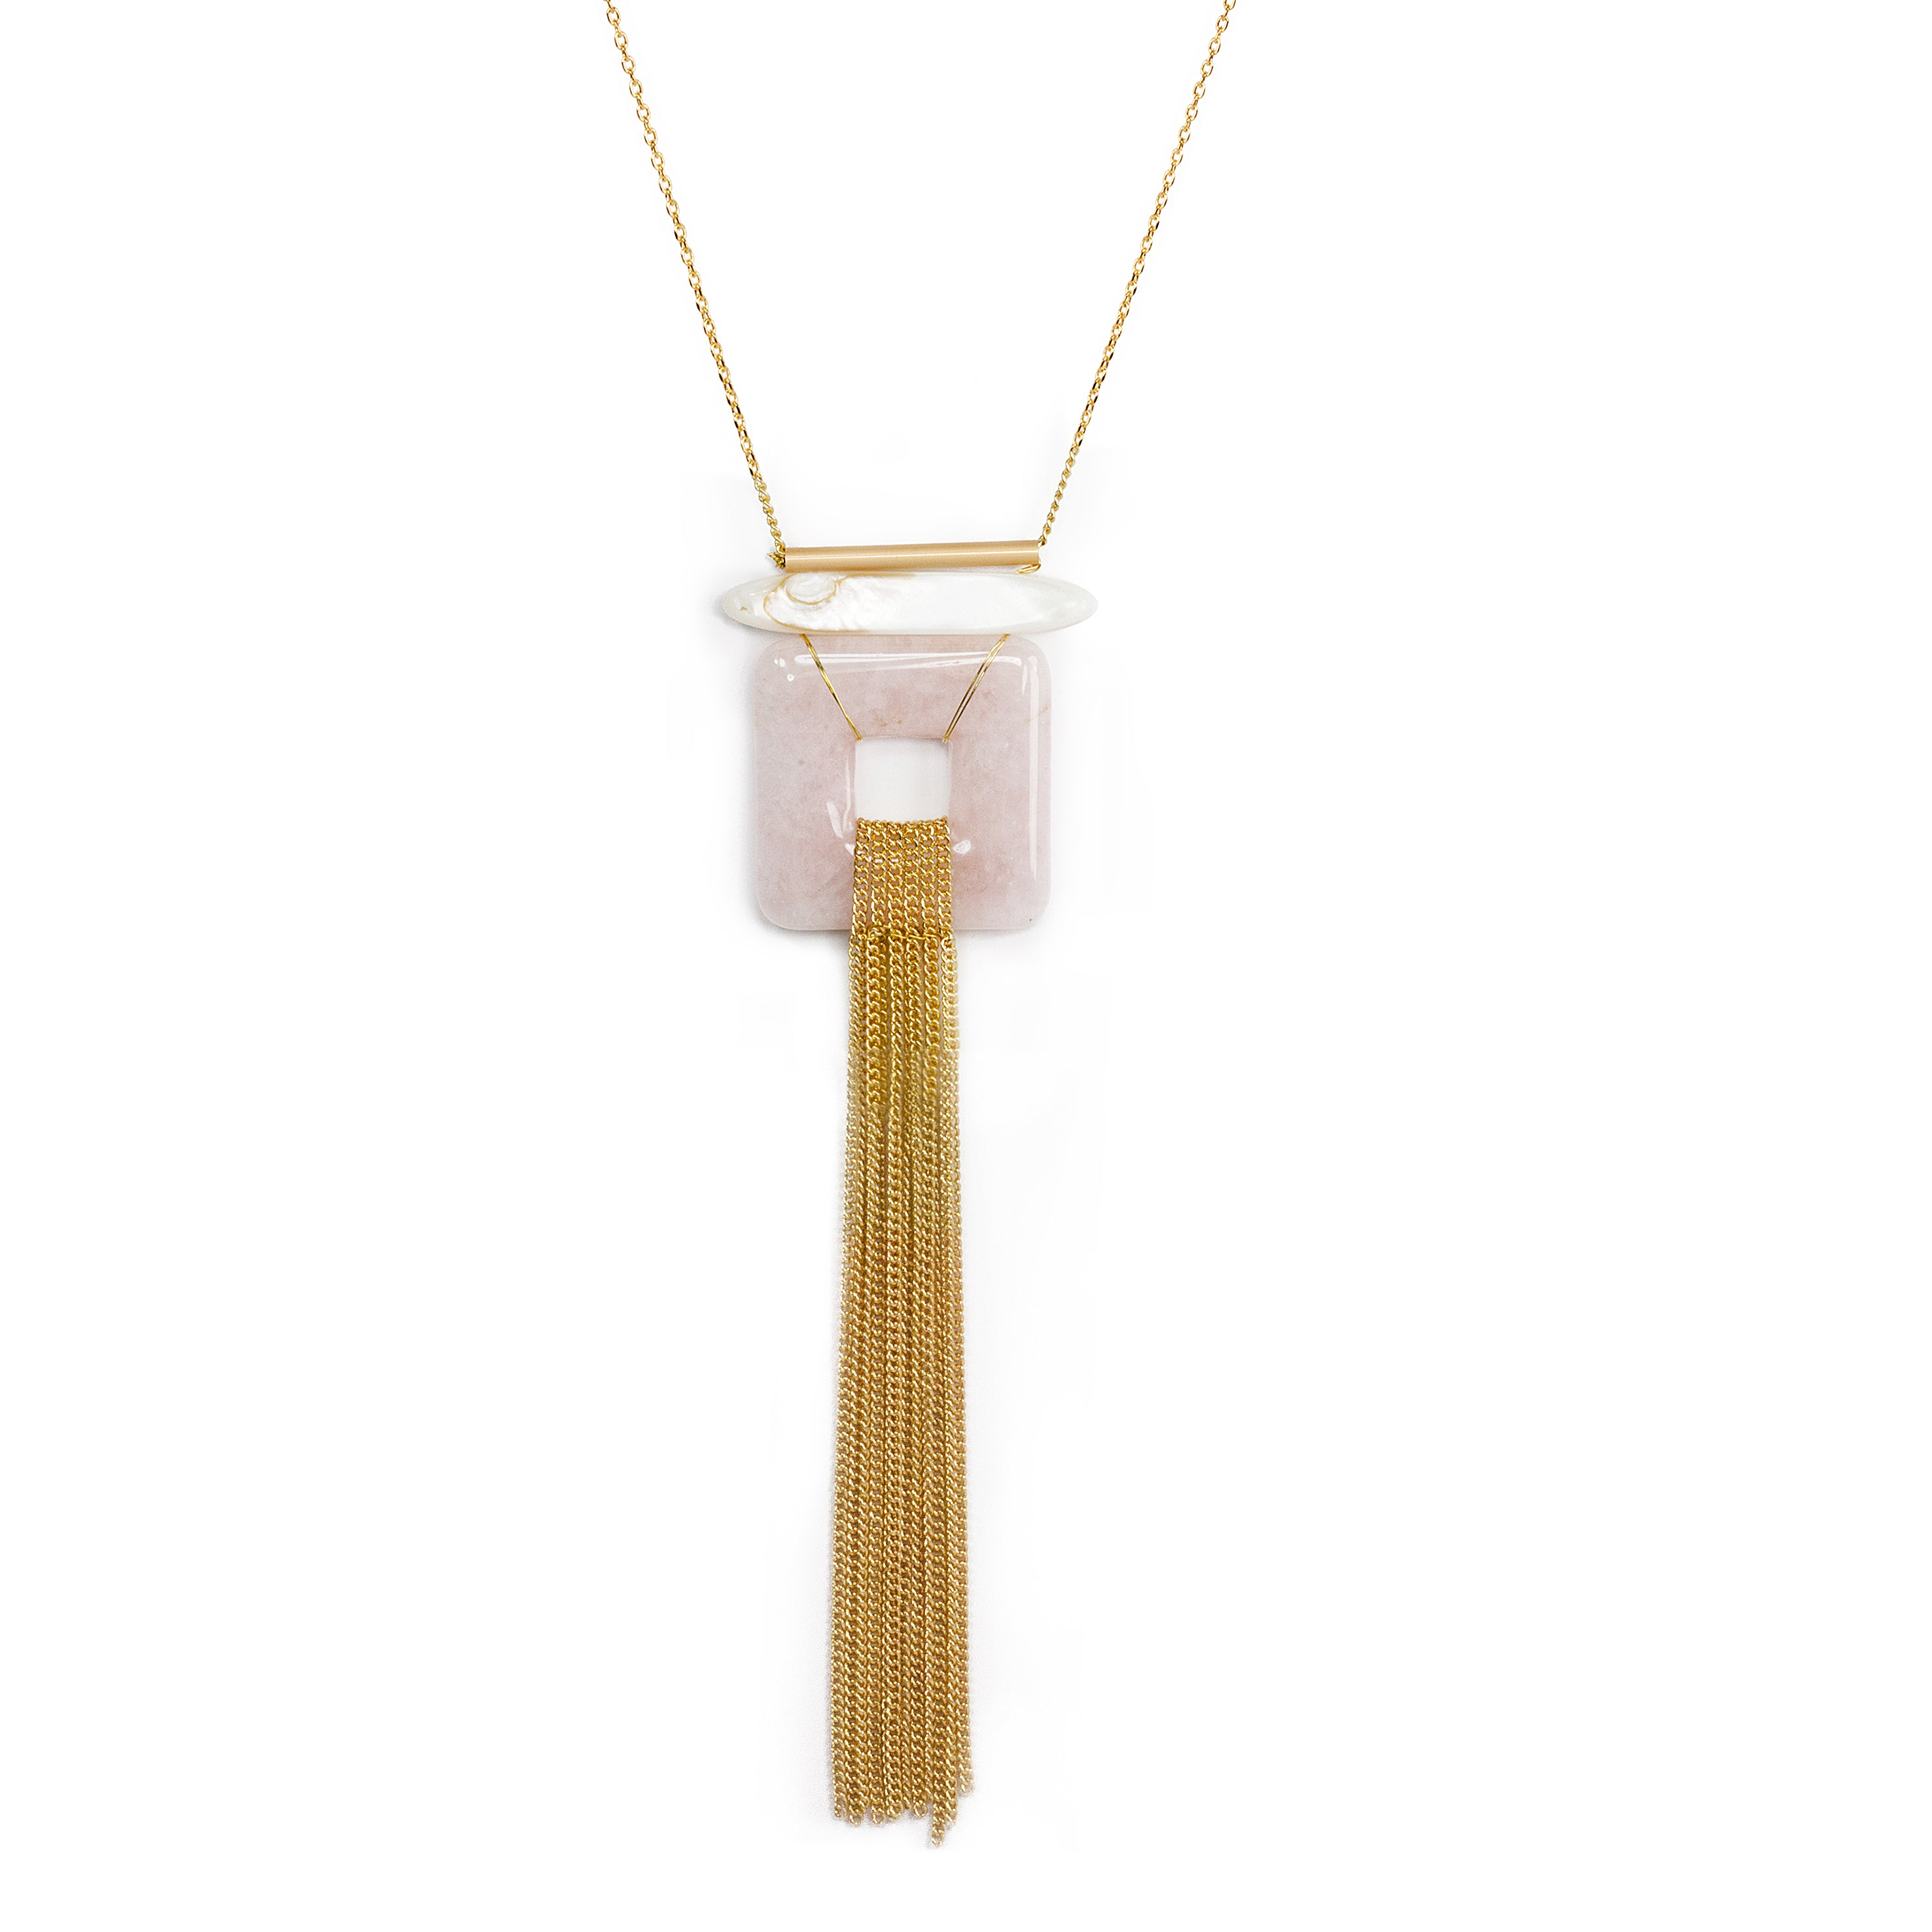 Geometric Square Chain Fringe Long Necklace